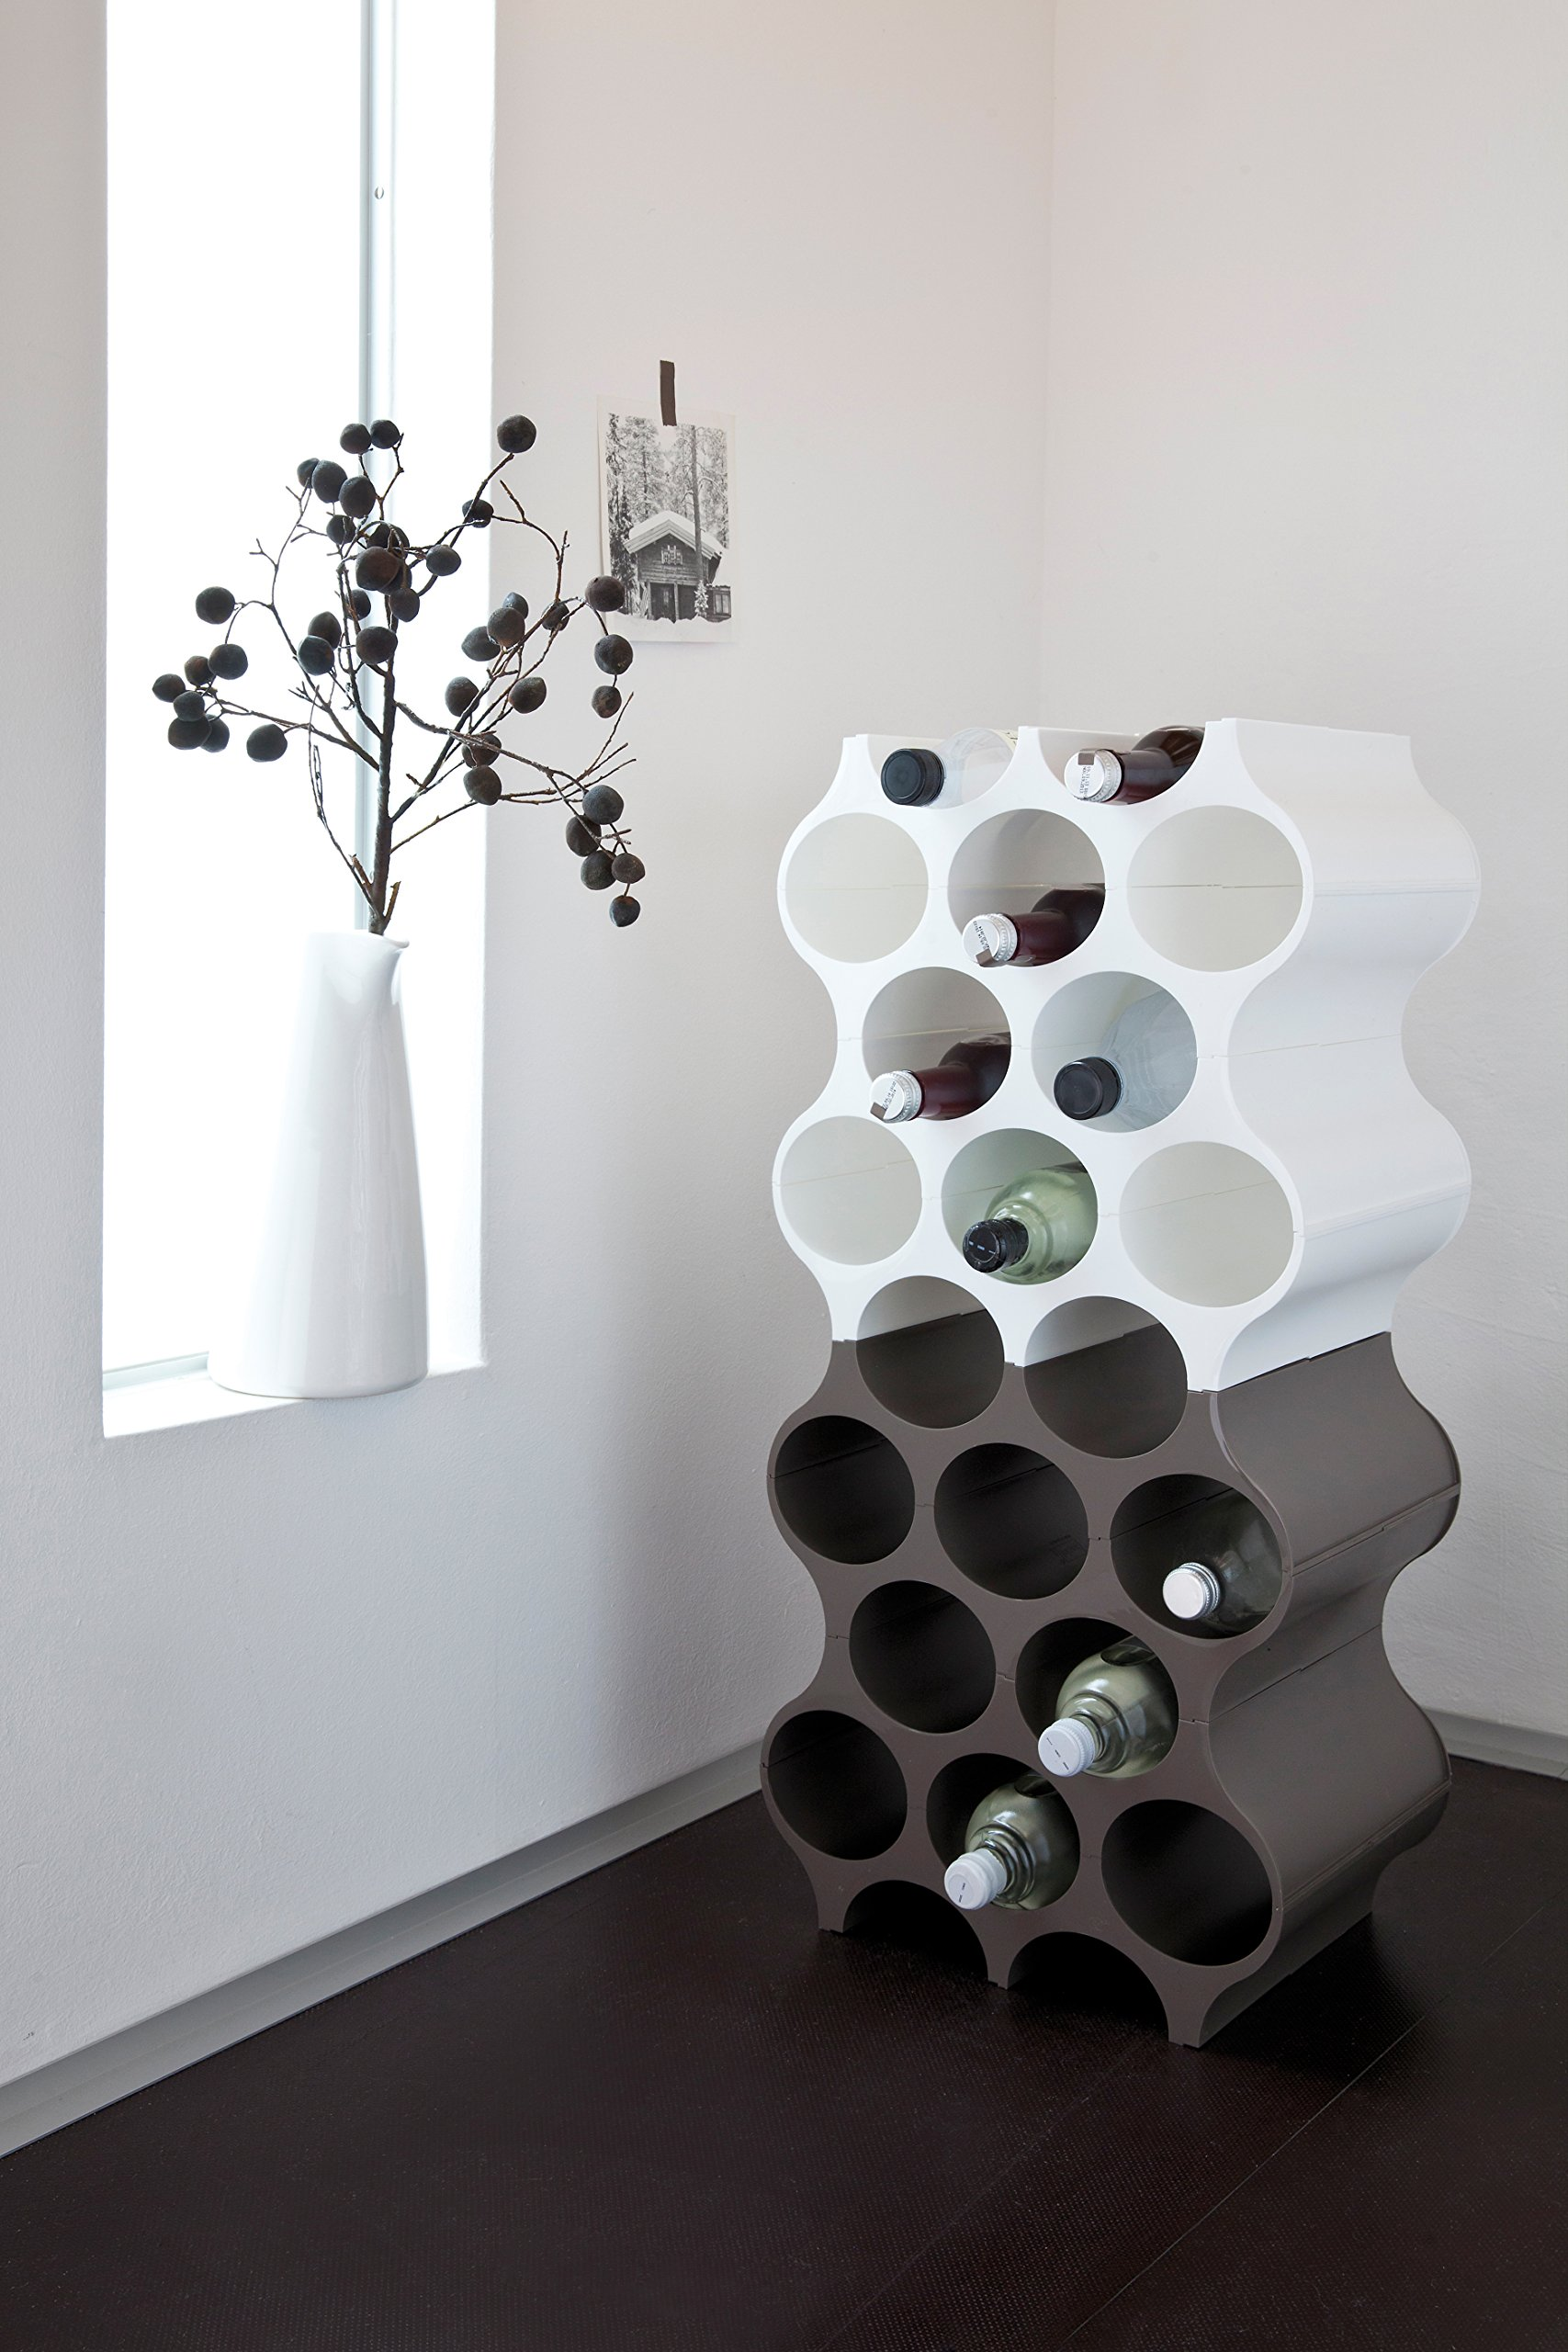 Koziol SET-UP Bottle Rack, Cosmos Black by Koziol (Image #3)